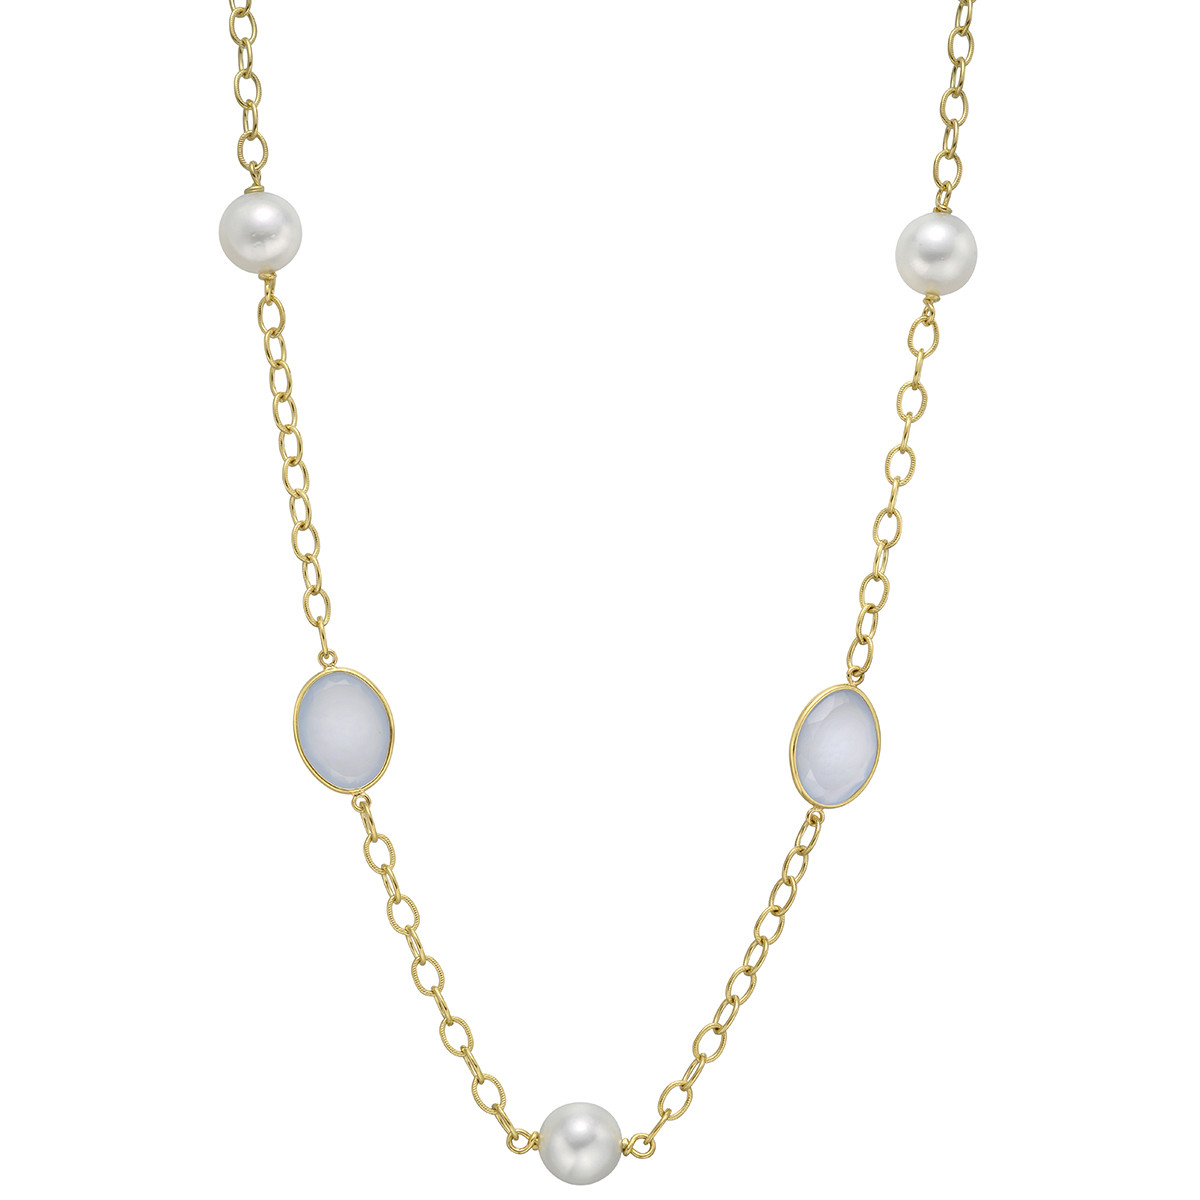 18k Yellow Gold, Chalcedony & Pearl Long Necklace